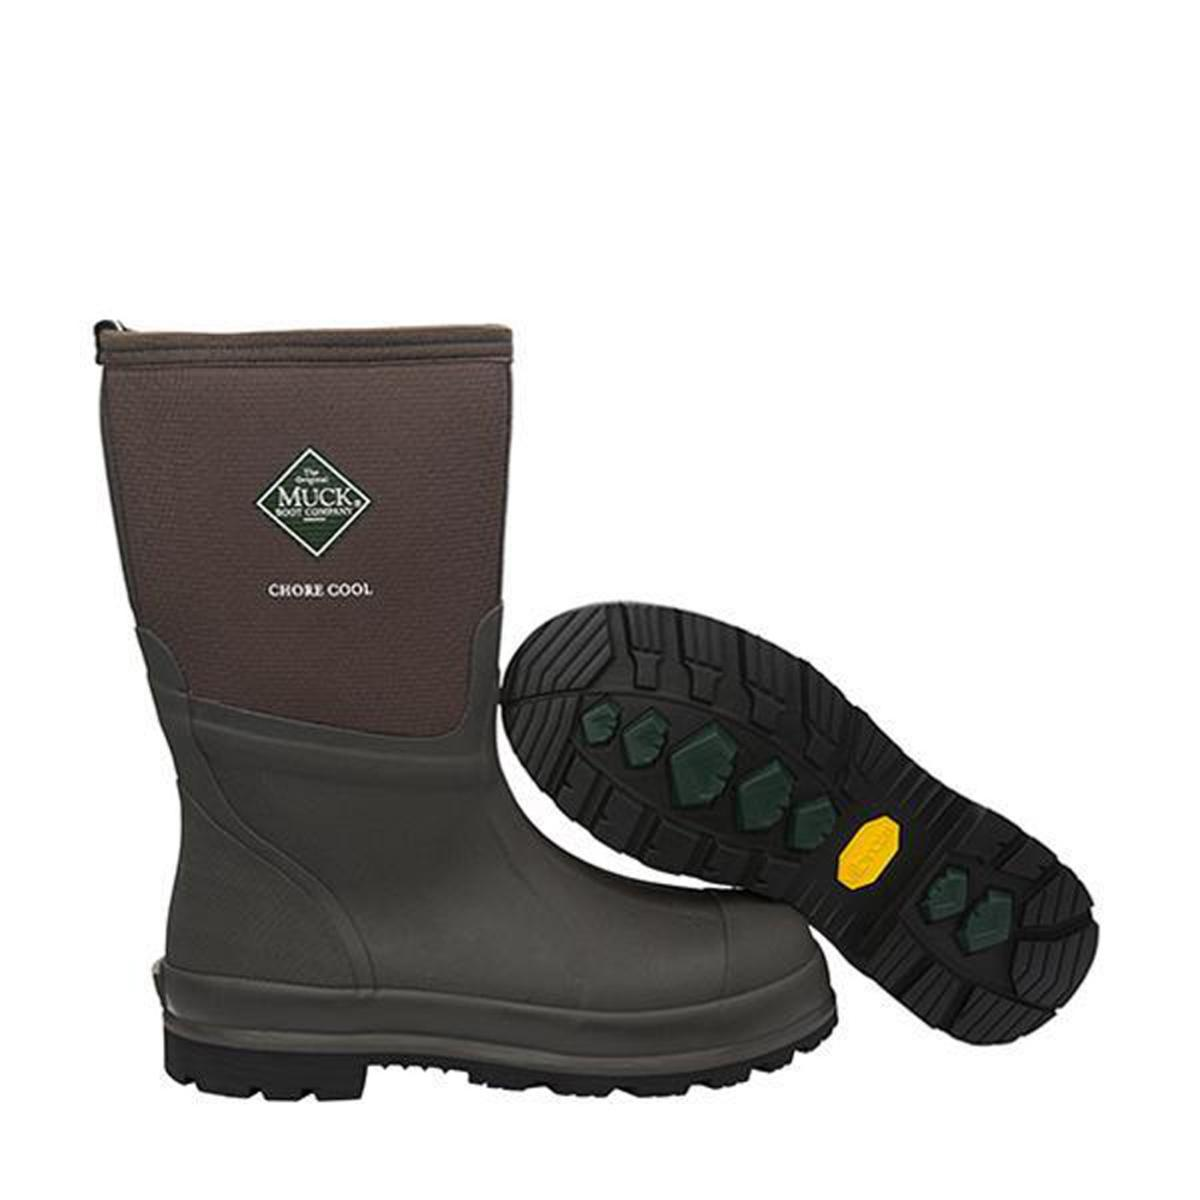 Muck Men's Chore Cool Mid Work Boots